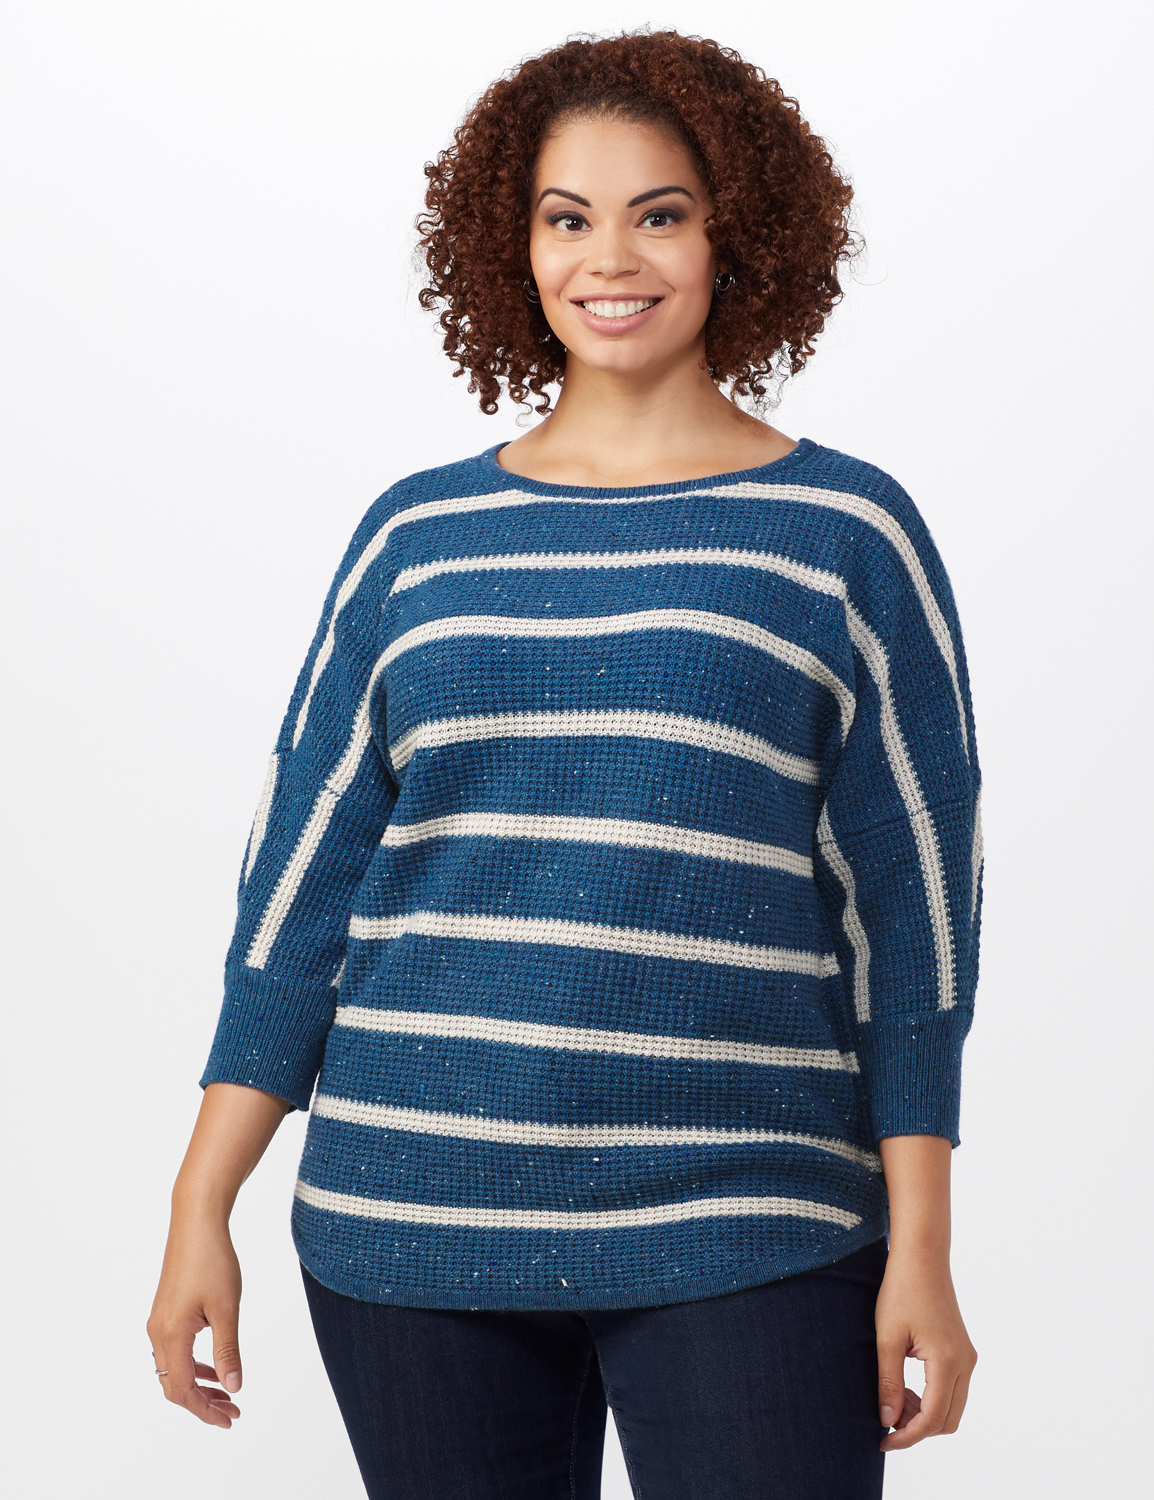 Westport Stripe Curved Hem Sweater - Plus -Vintage Denim/Silver - Front